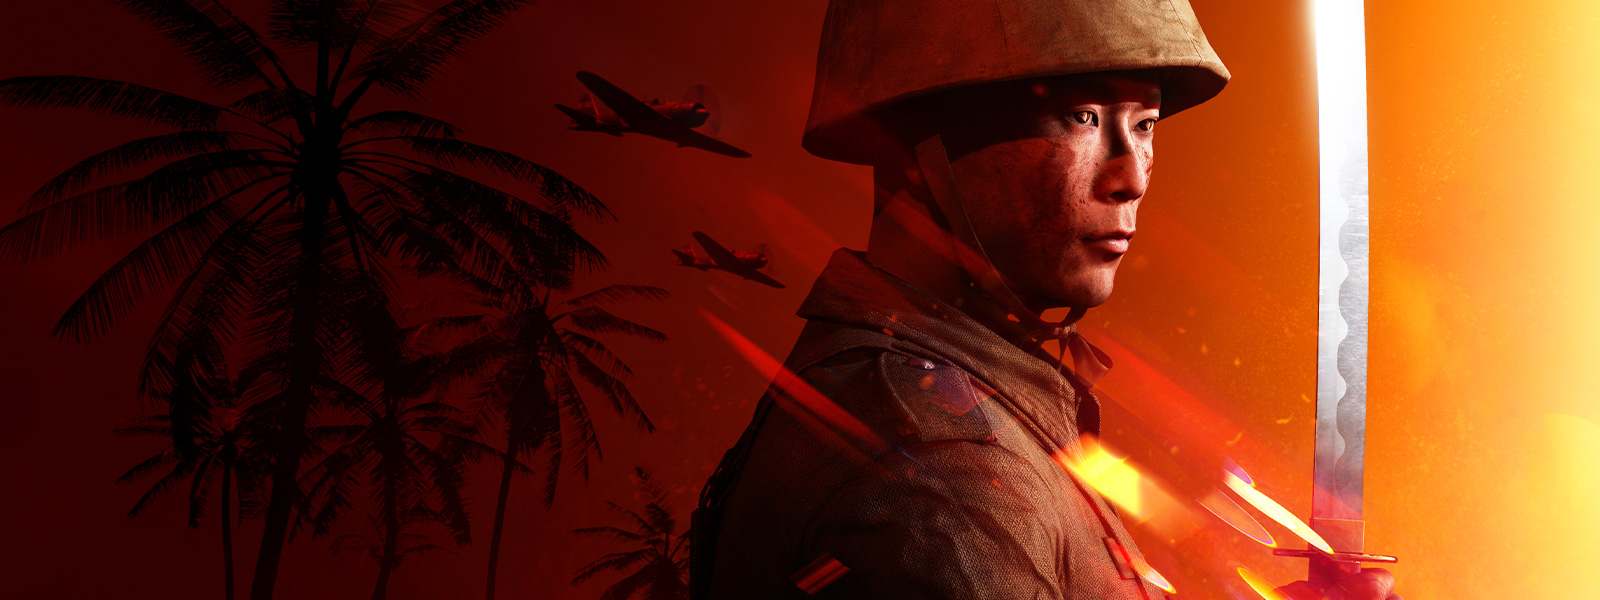 Solider in uniform looks to the right holding a katana, blood-orange background with war planes flying over palm trees